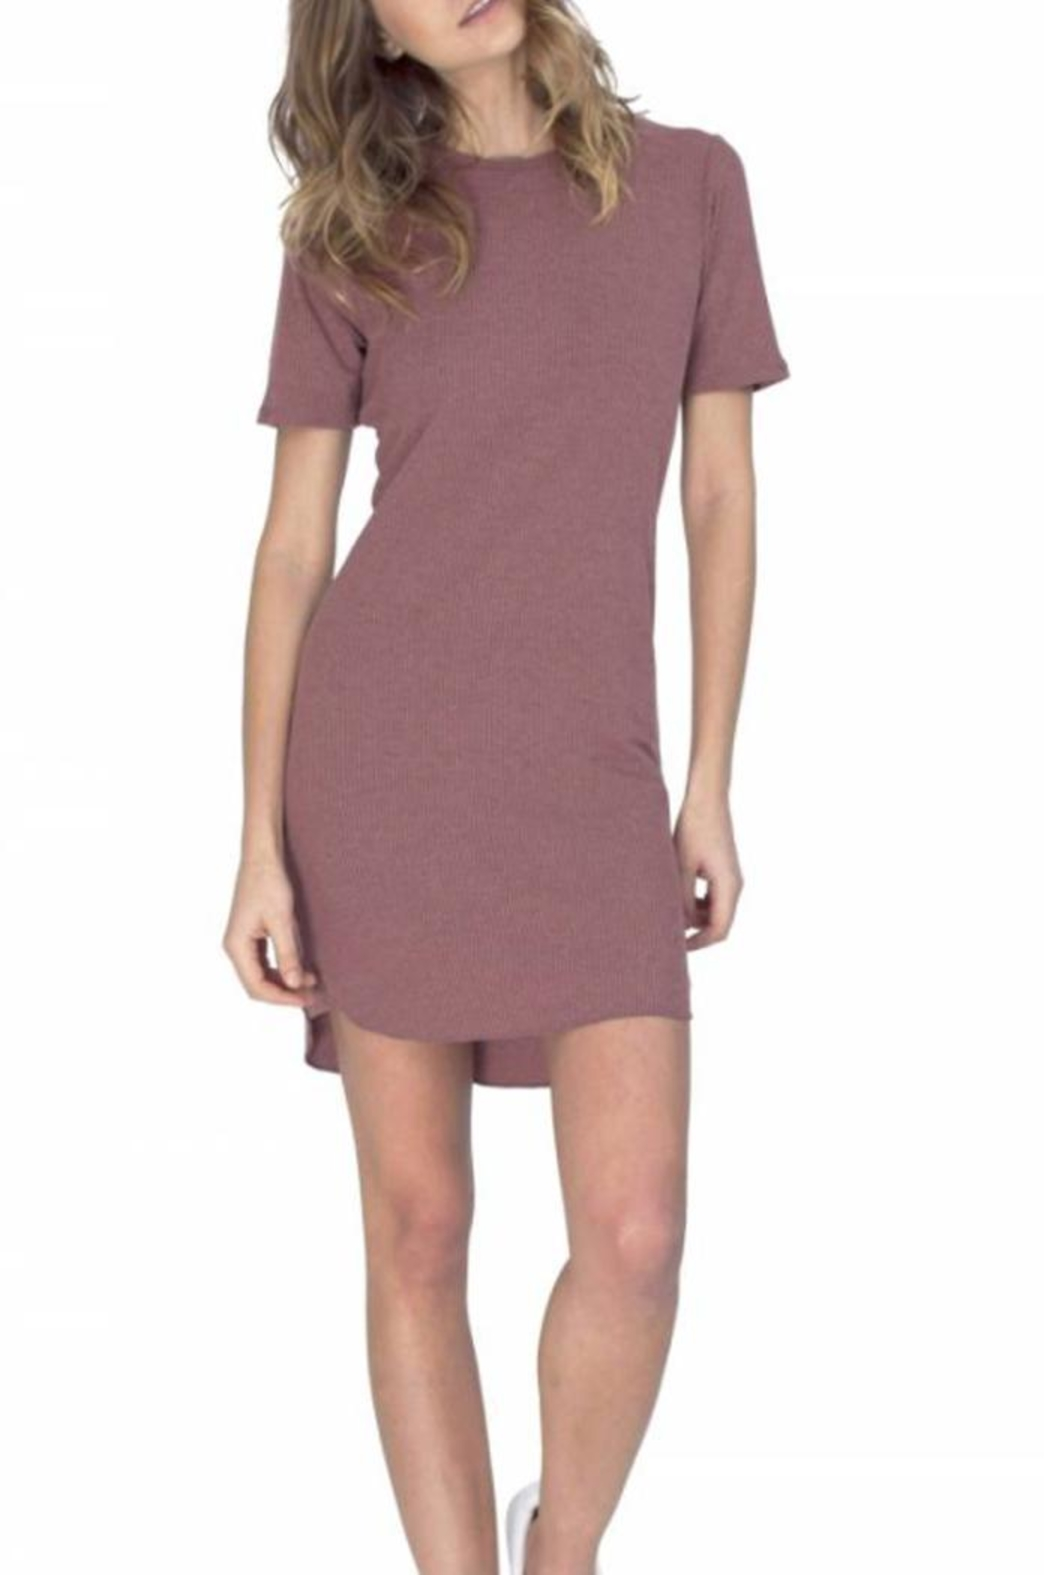 Gentle Fawn Ribbed T Shirt Dress - Main Image